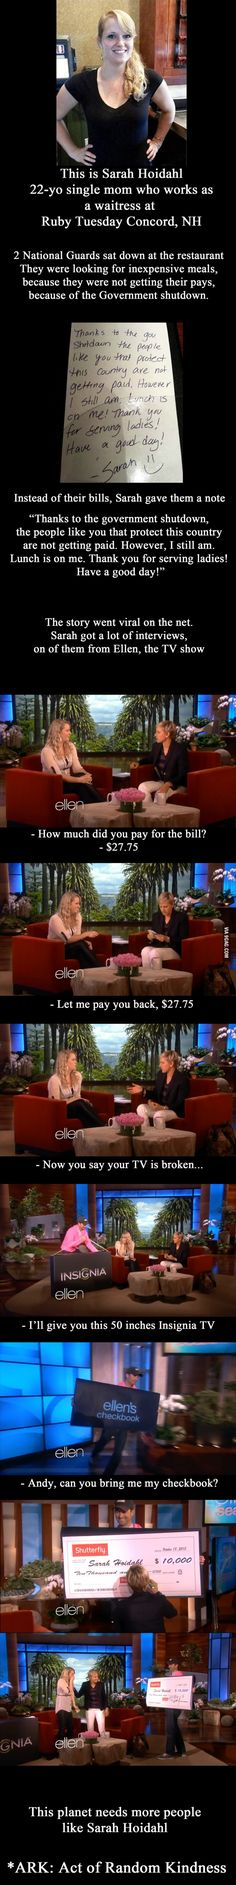 Ellen is infamous for rewarding people who perform random acts of kindness, just Love it.